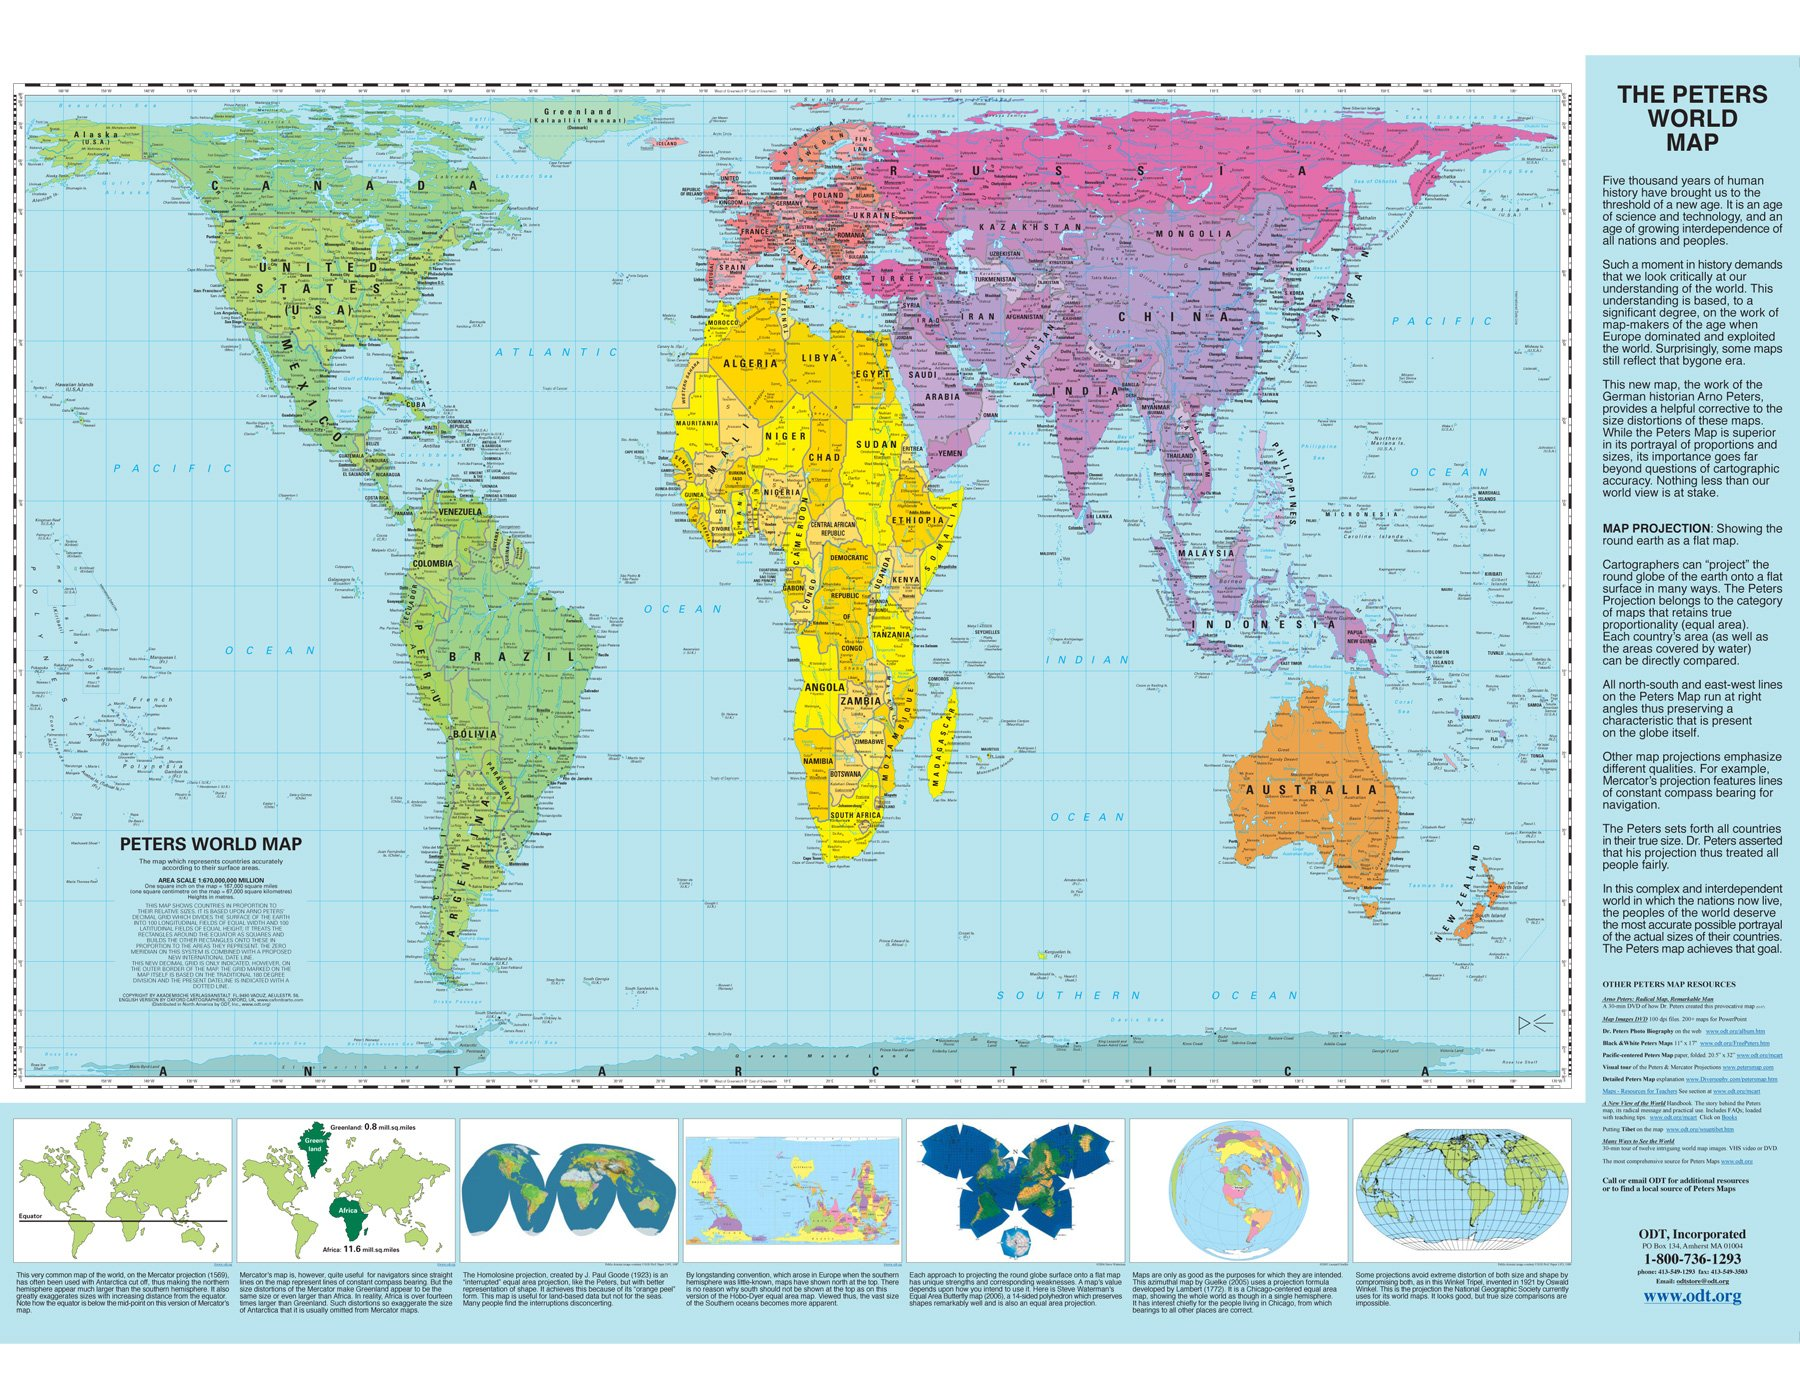 Peters projection world map laminated arno peters odtmaps peters projection world map laminated arno peters odtmaps oxford cartographers 9781931057035 amazon books gumiabroncs Images